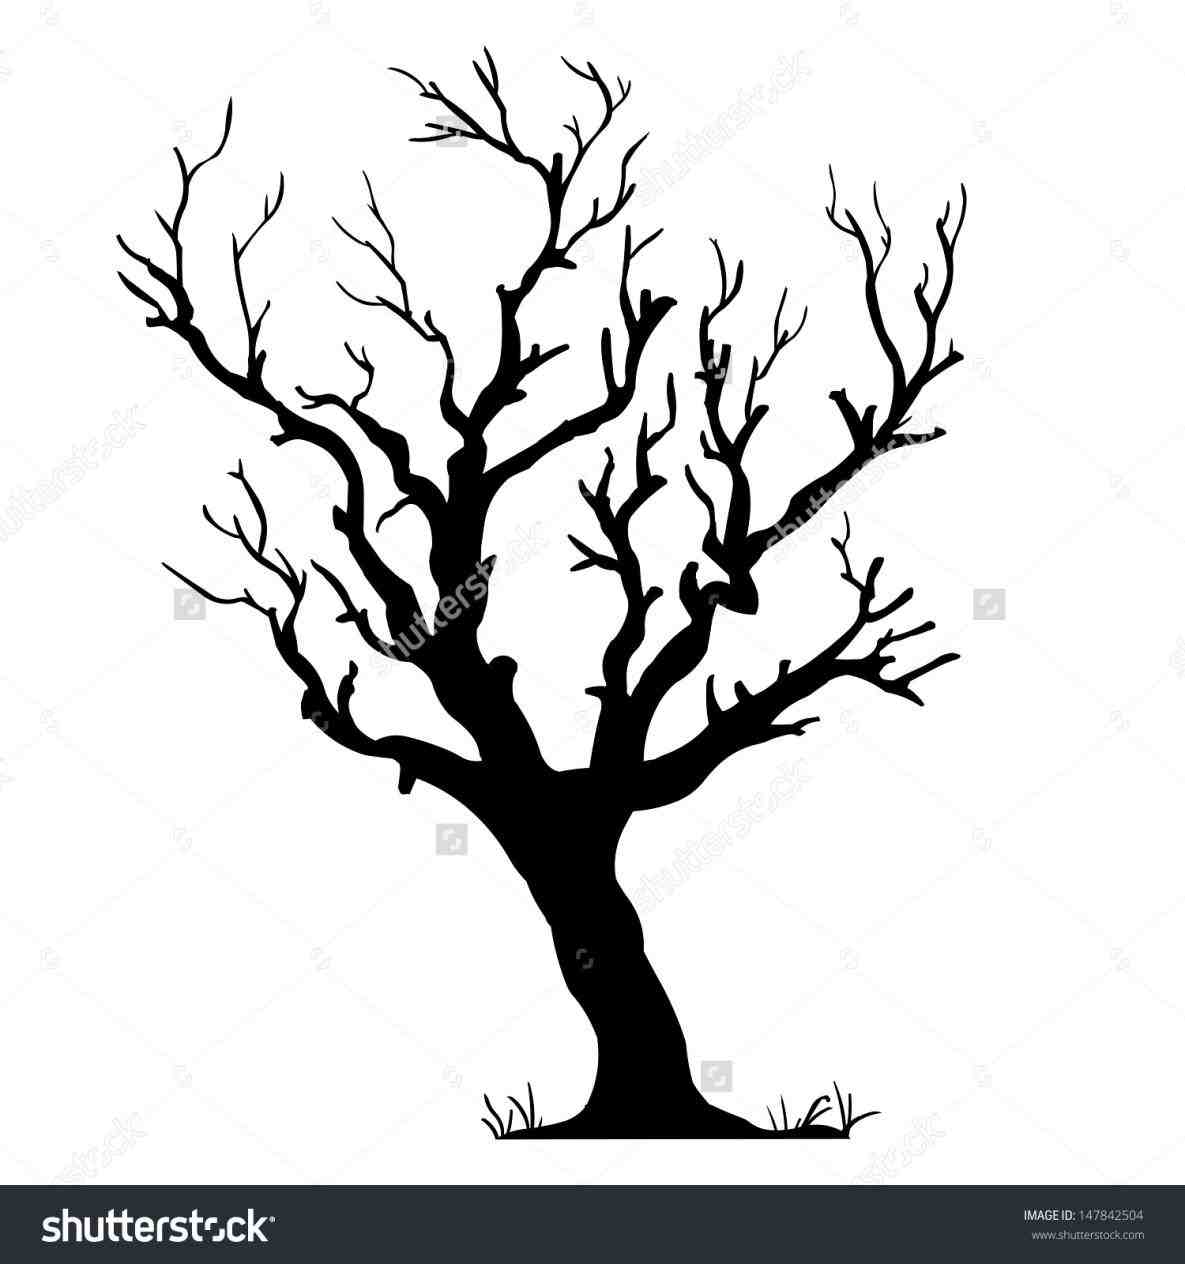 1185x1264 Leafless Tree Line Drawing Lazer Cnc Ideas Cnc